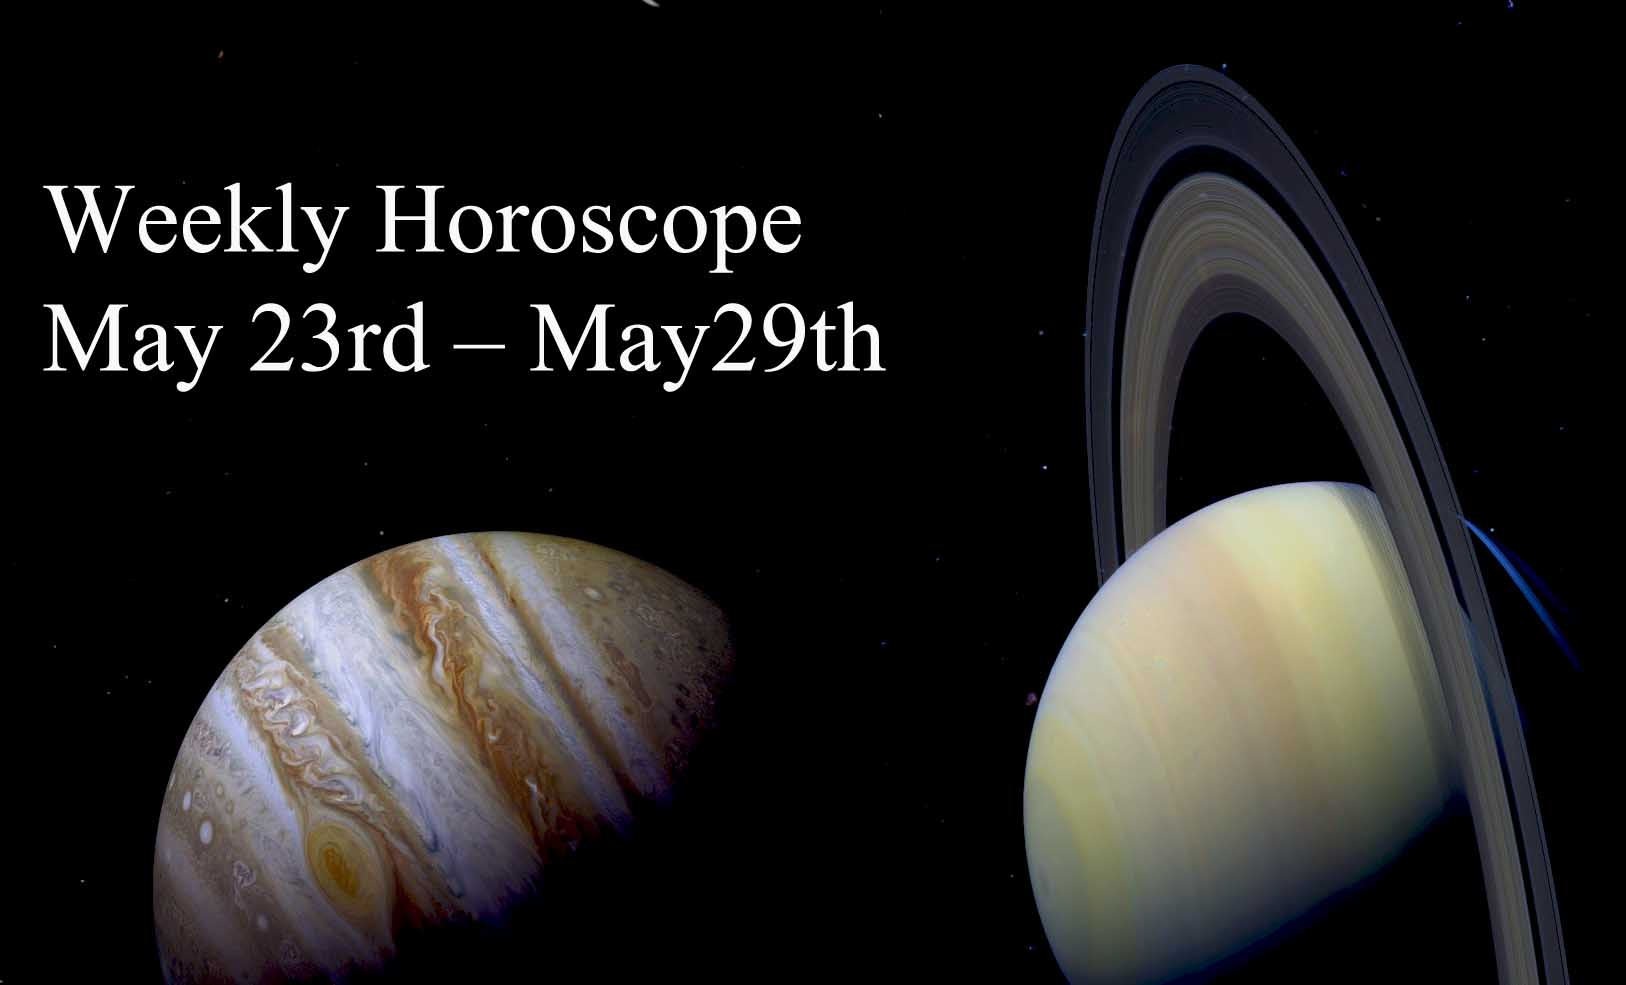 weekly horoscope may 23-29